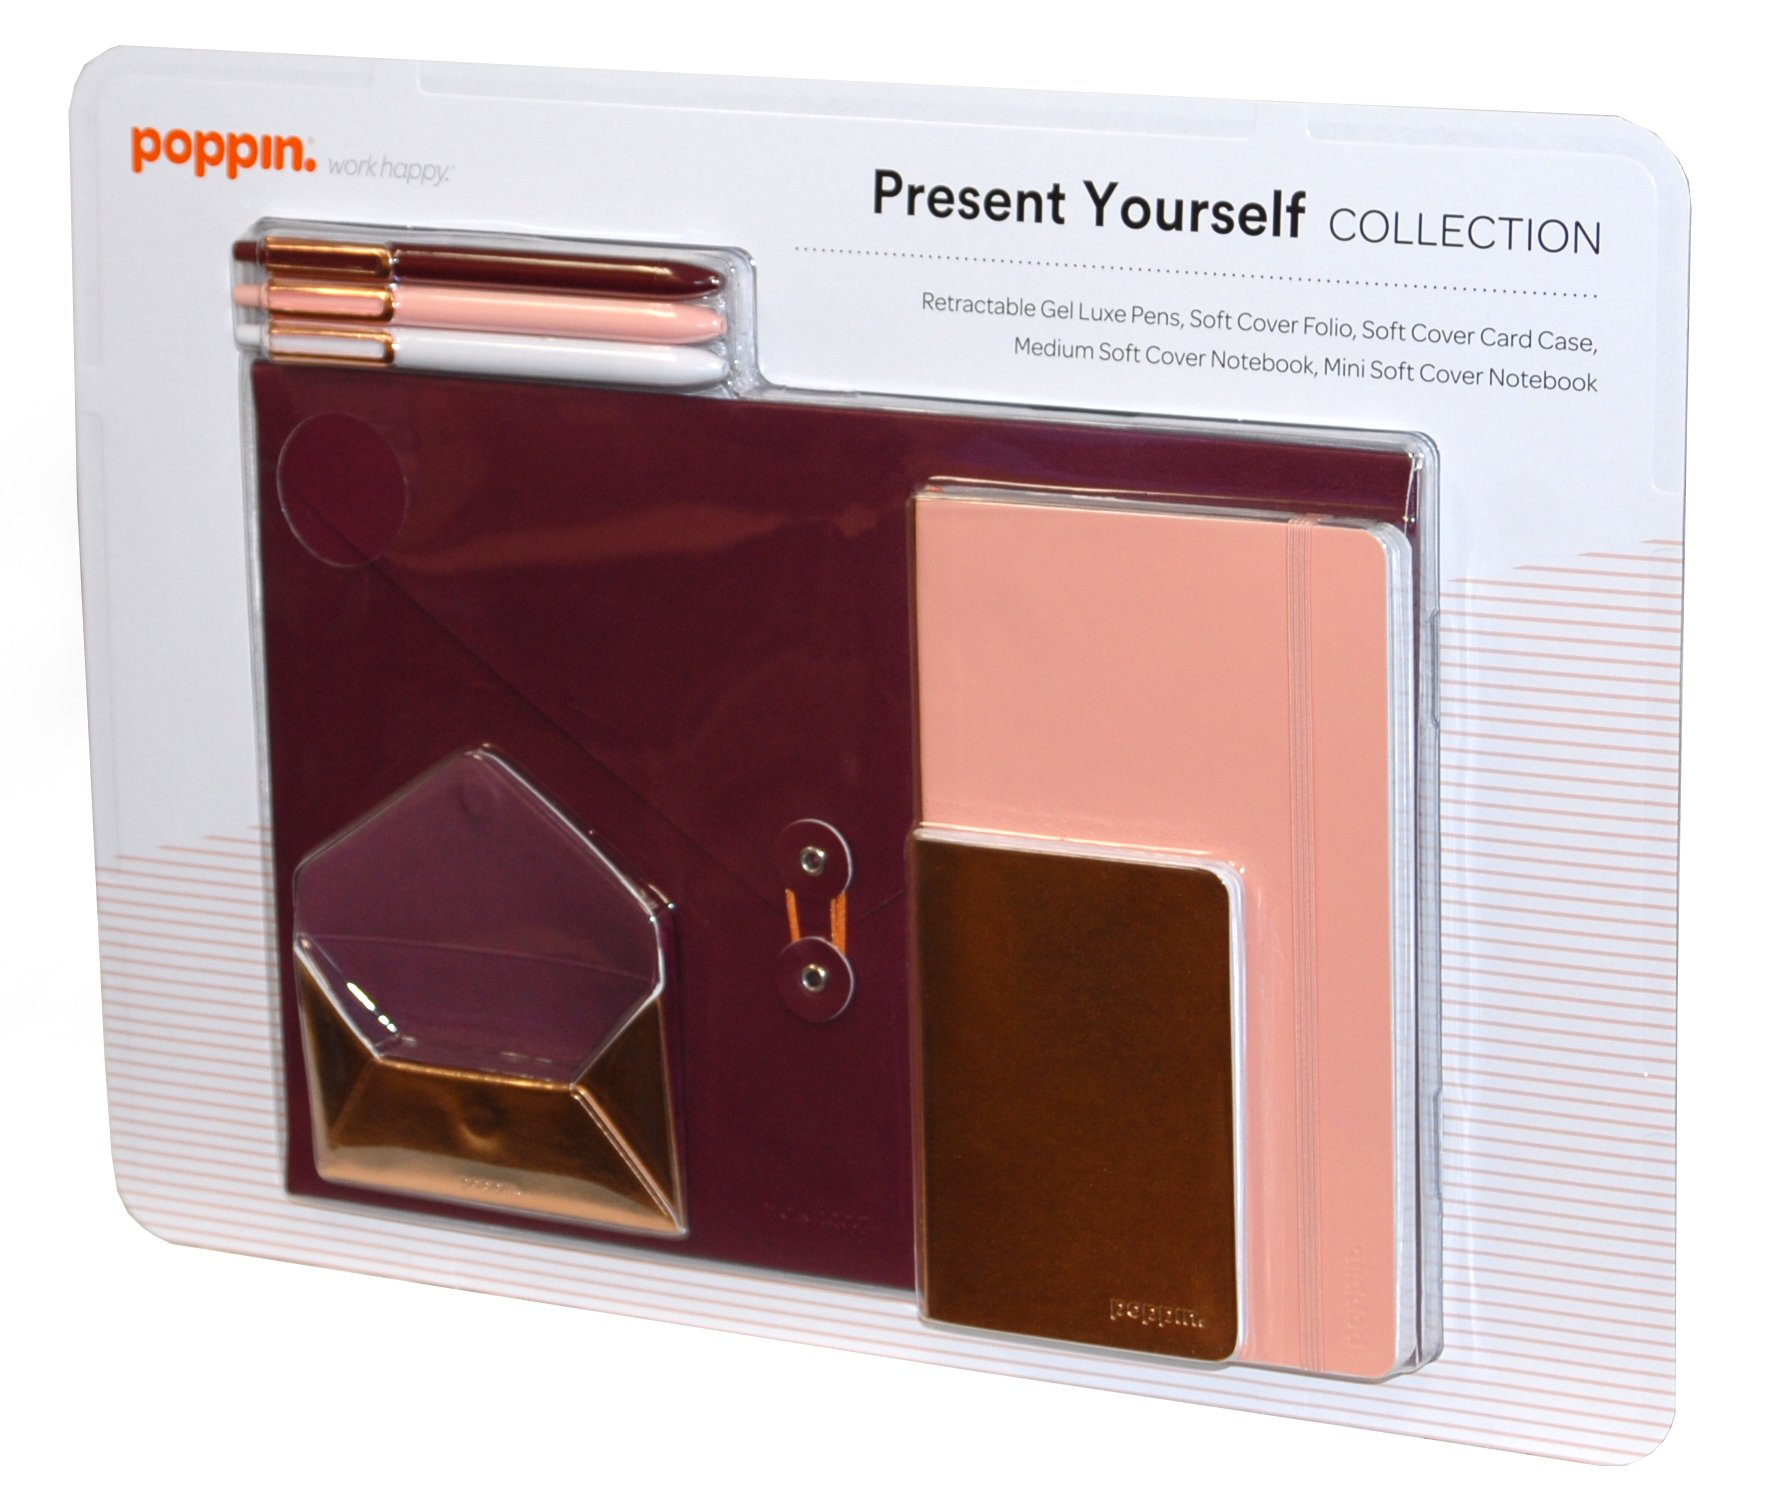 Poppin. Present Yourself Collection (Gel Pens With Black Ink, Medium and Mini Soft Cover Notebook, Soft Cover Folio, Soft Cover Card Case)